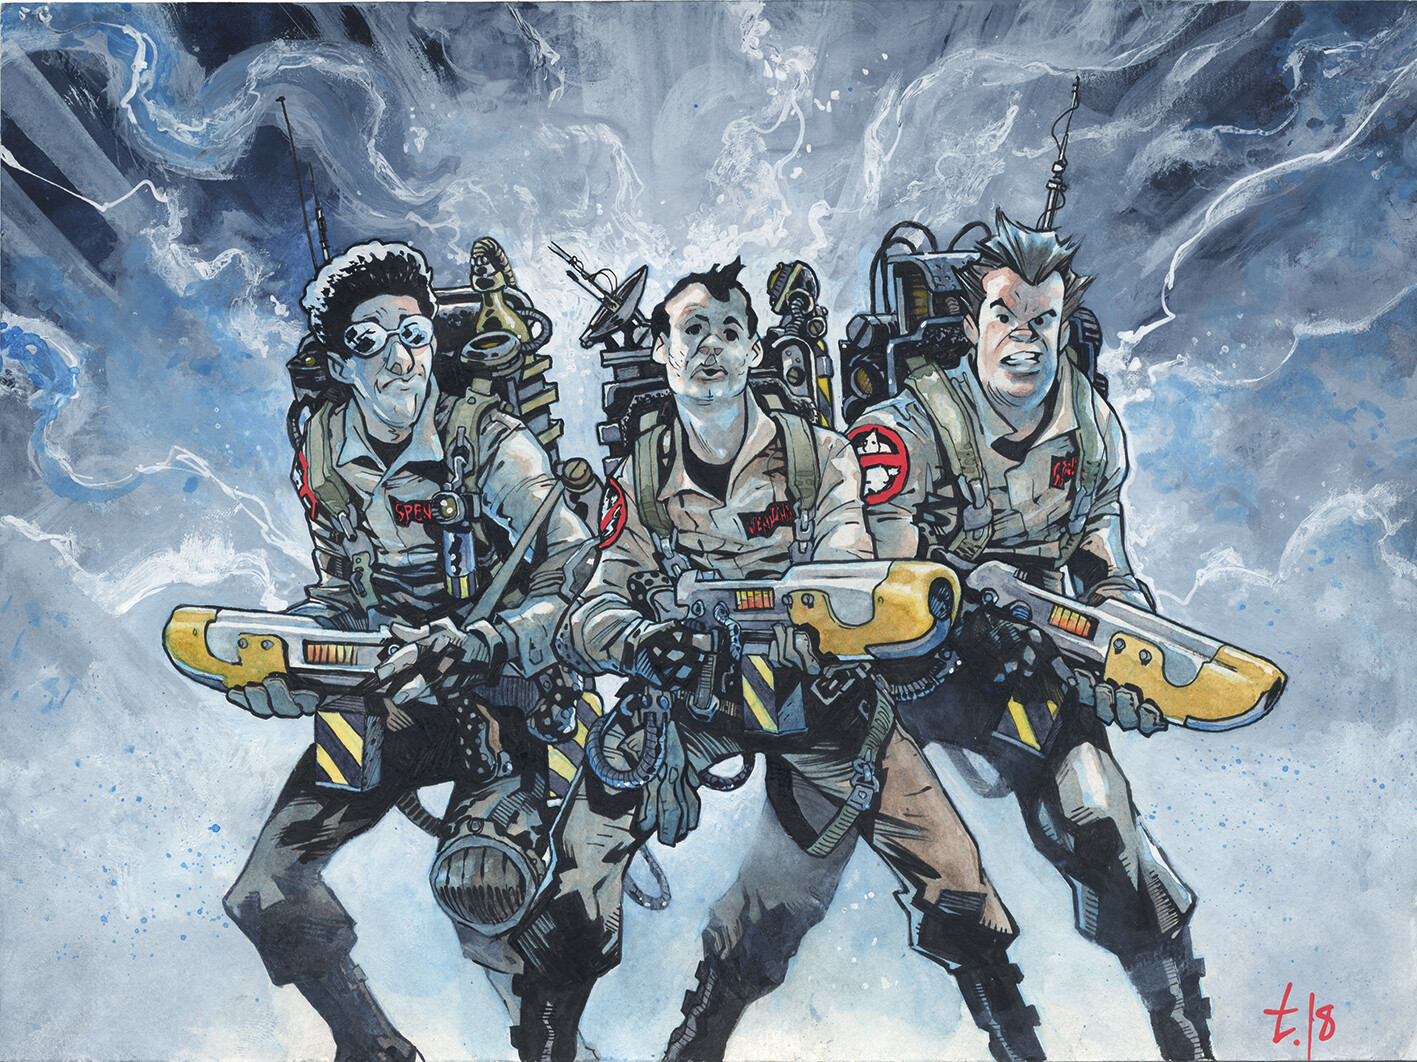 Tirso cons ghostbustersfinalart copia